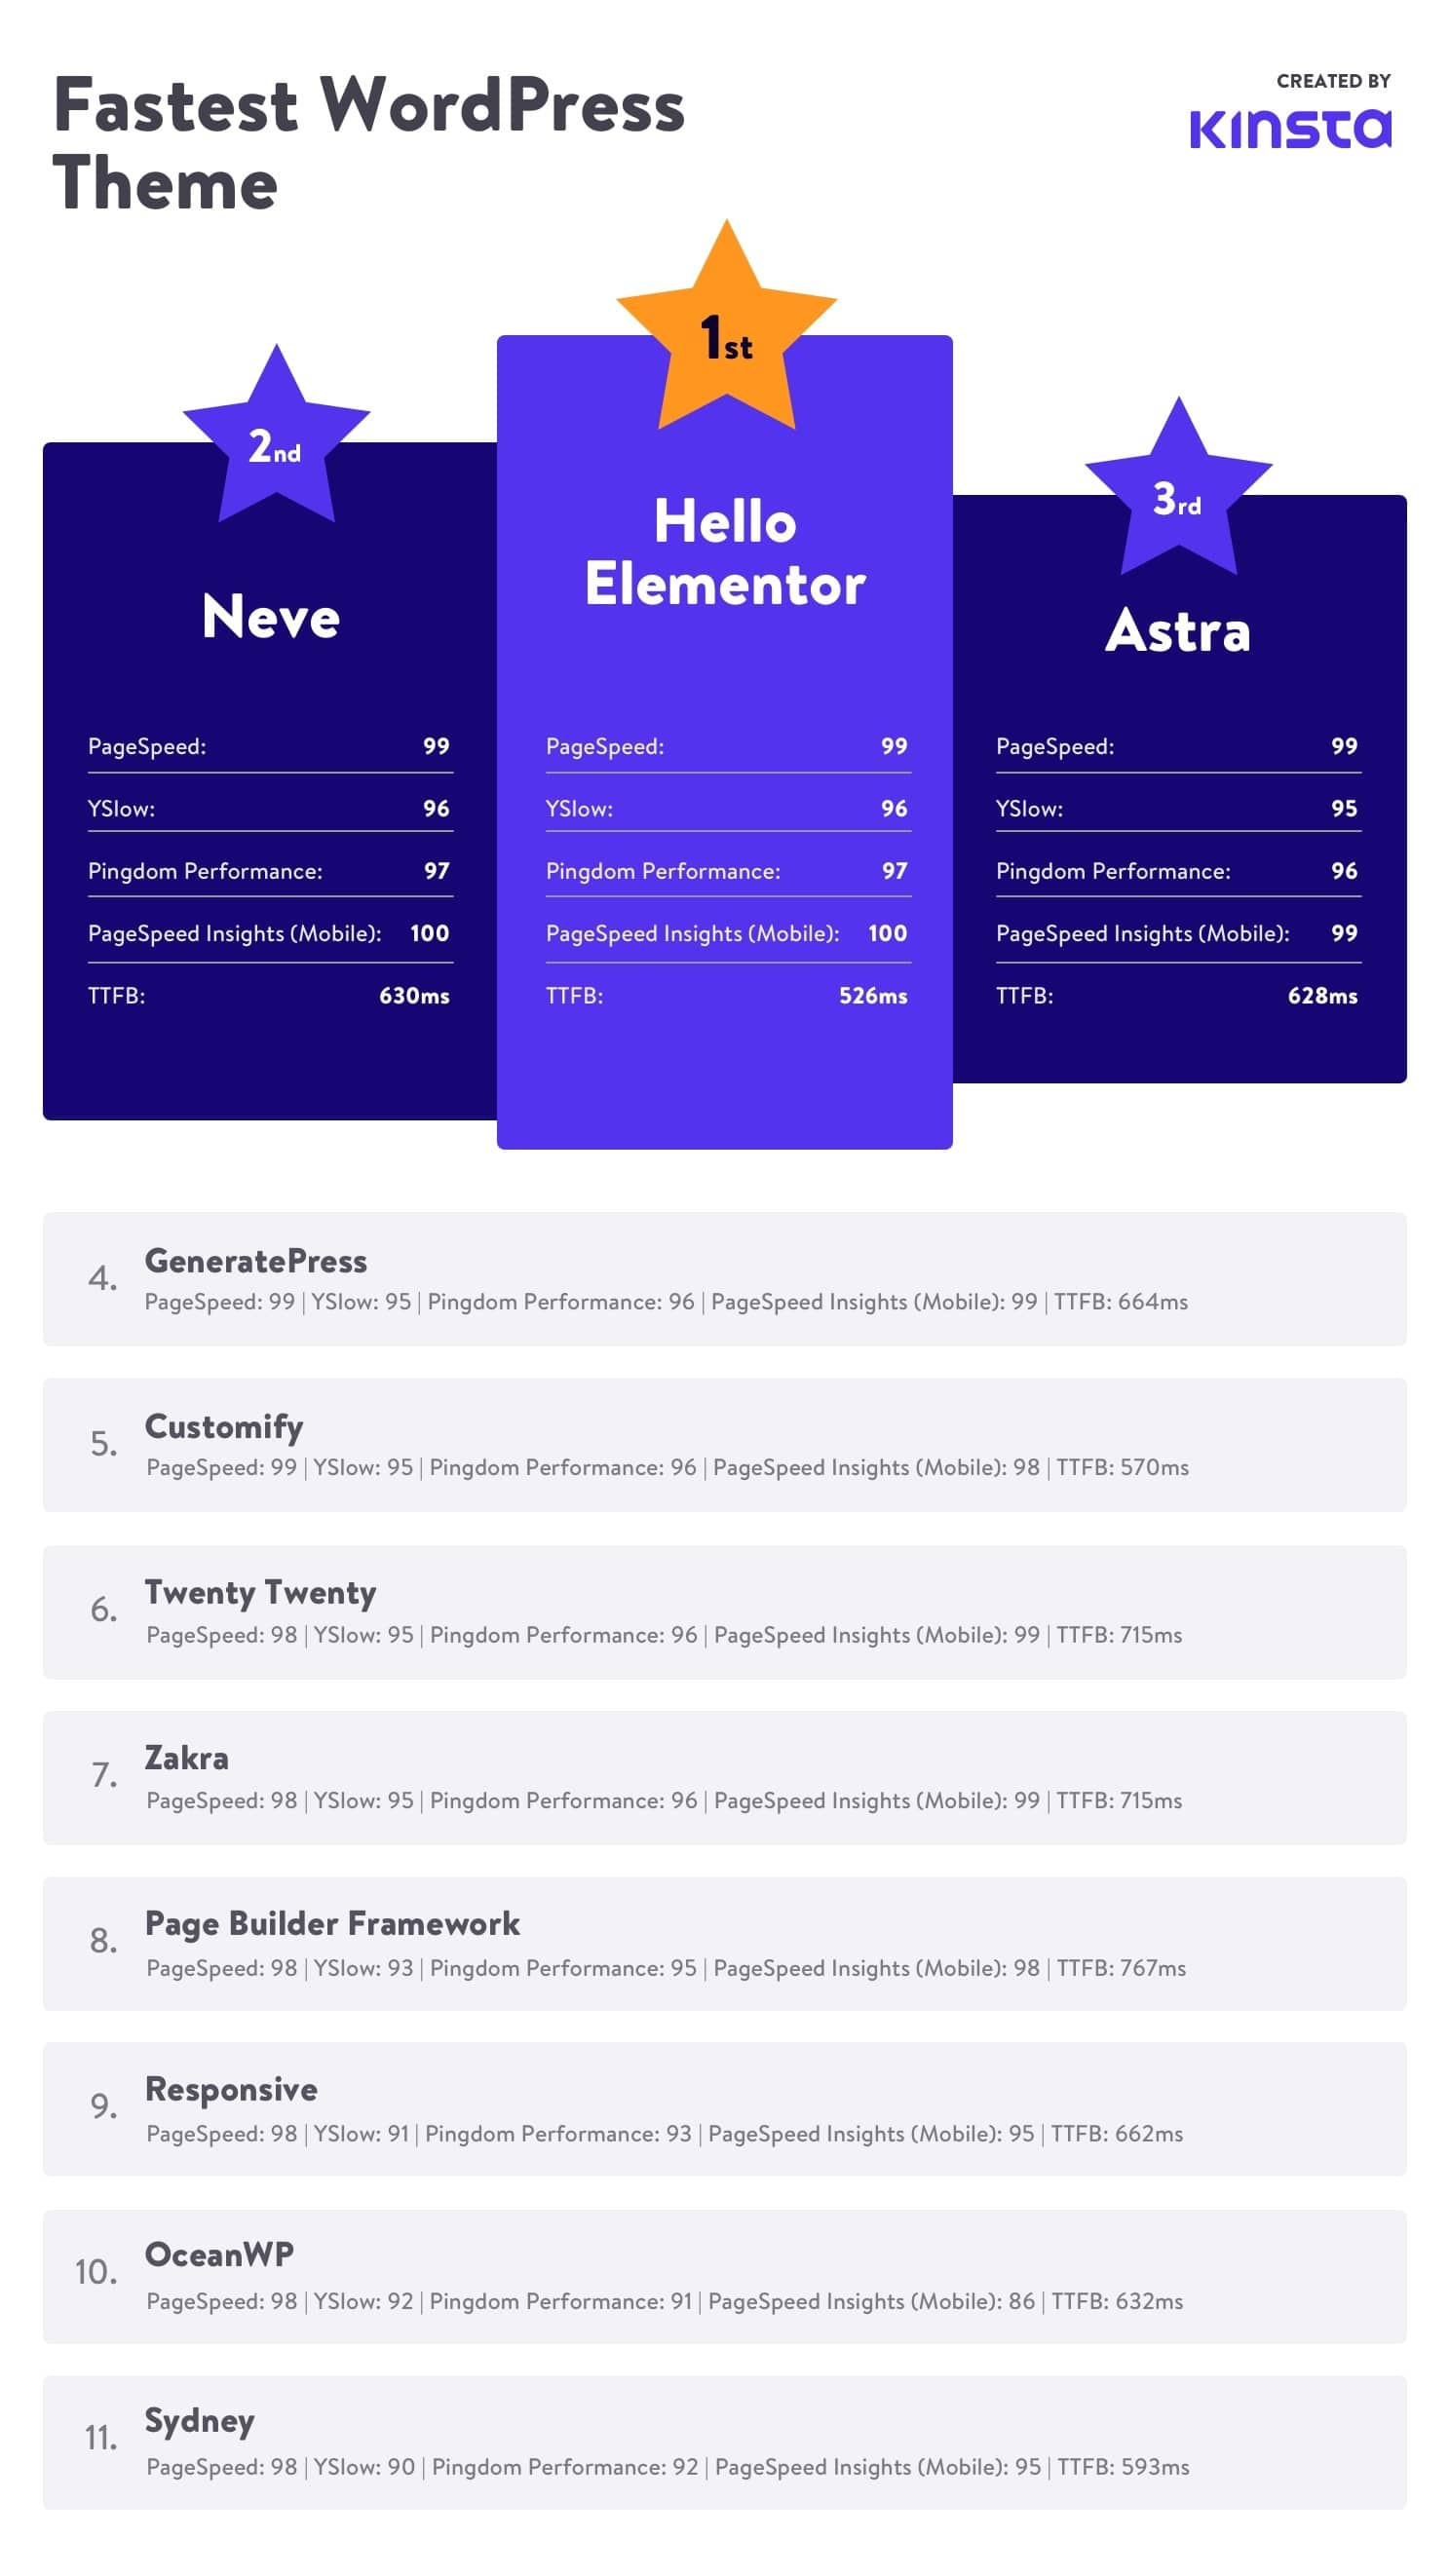 fastest wordpress theme by kinsta